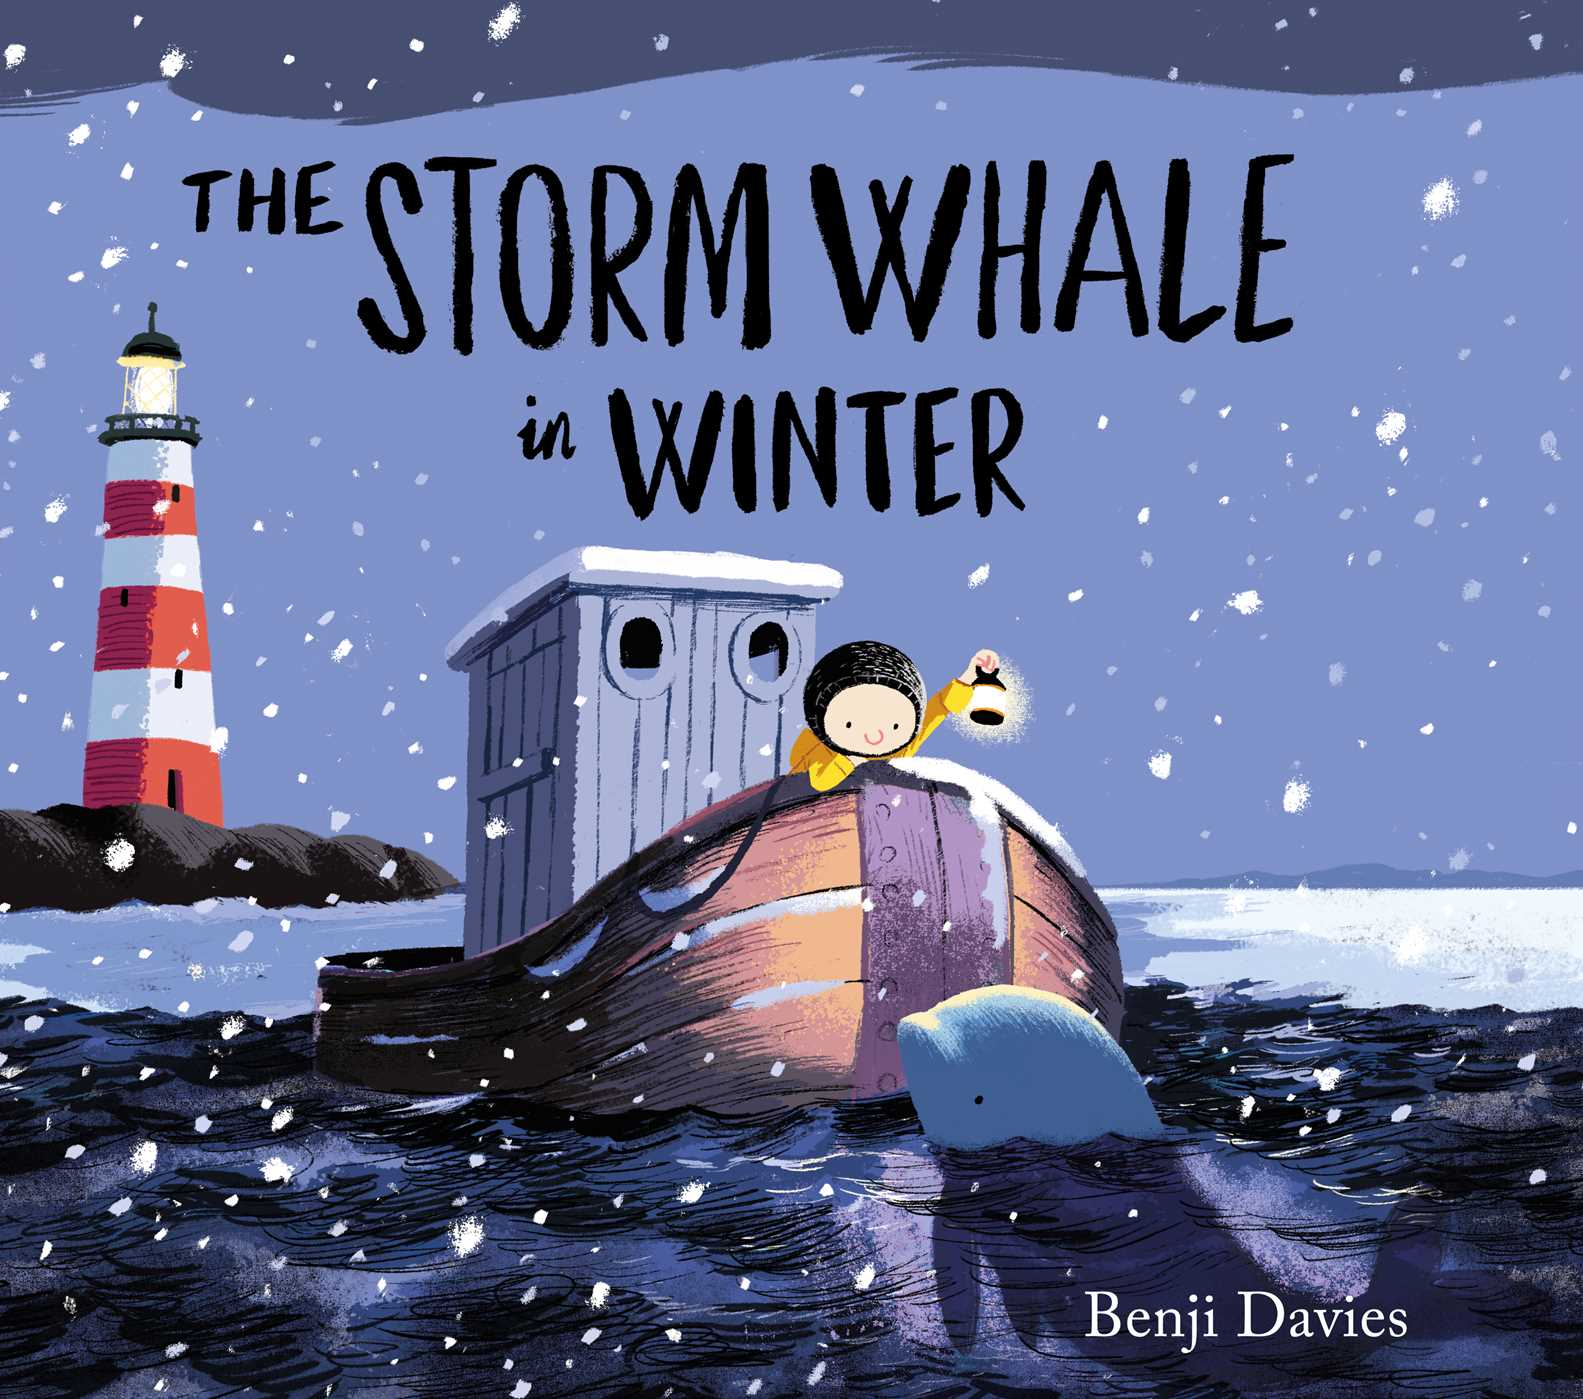 The storm whale in winter 9781471119996 hr